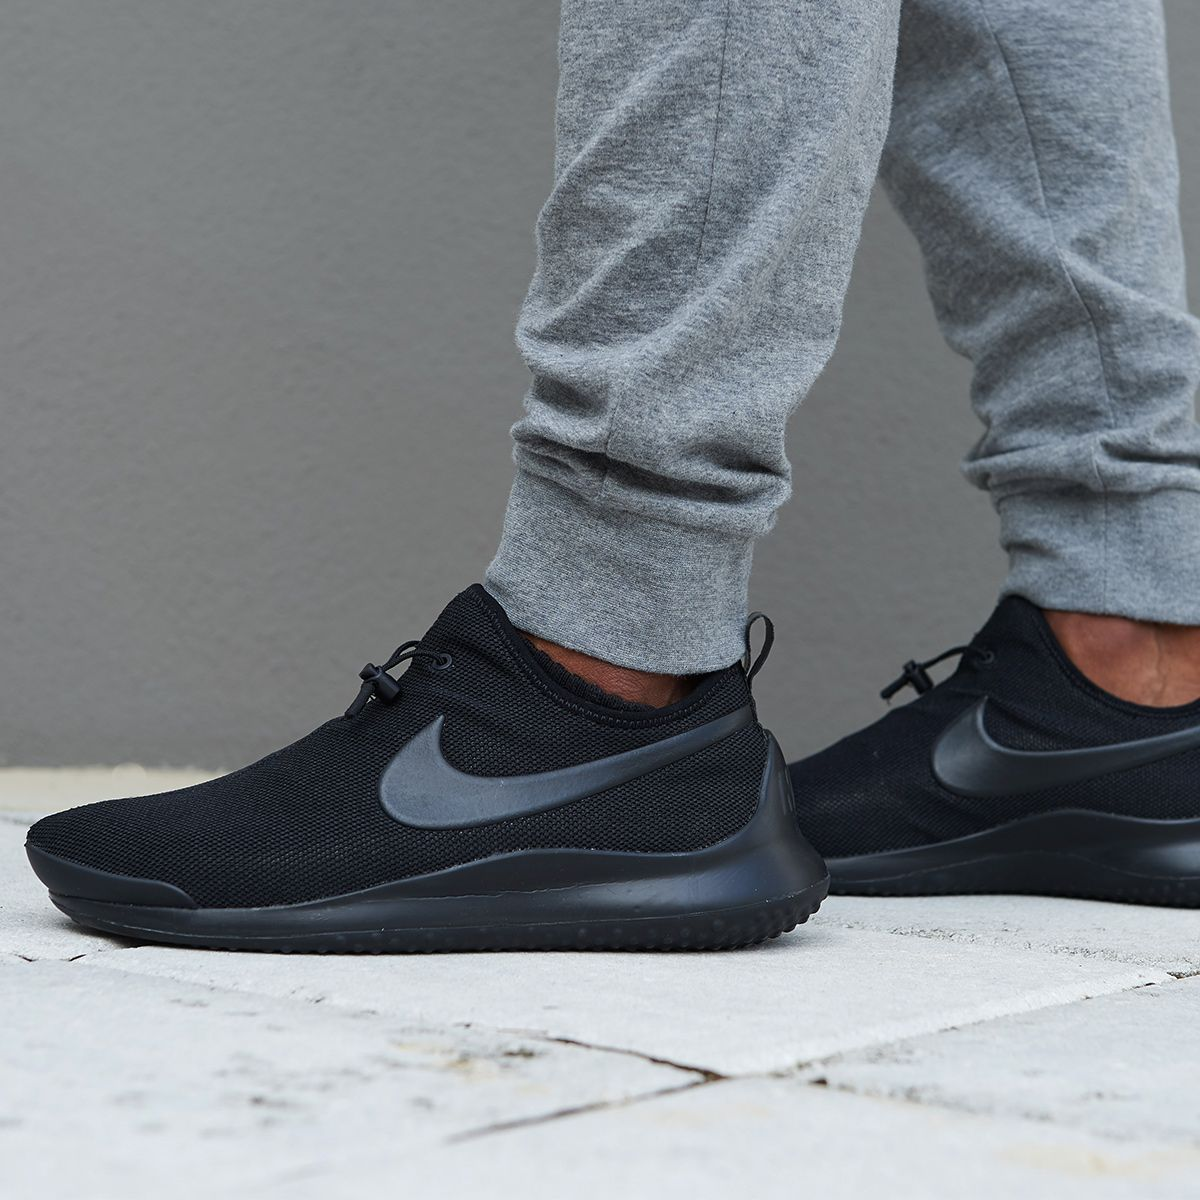 Effortless style, unbelievable comfort. Introducing the Nike Aptare—your  new go-to